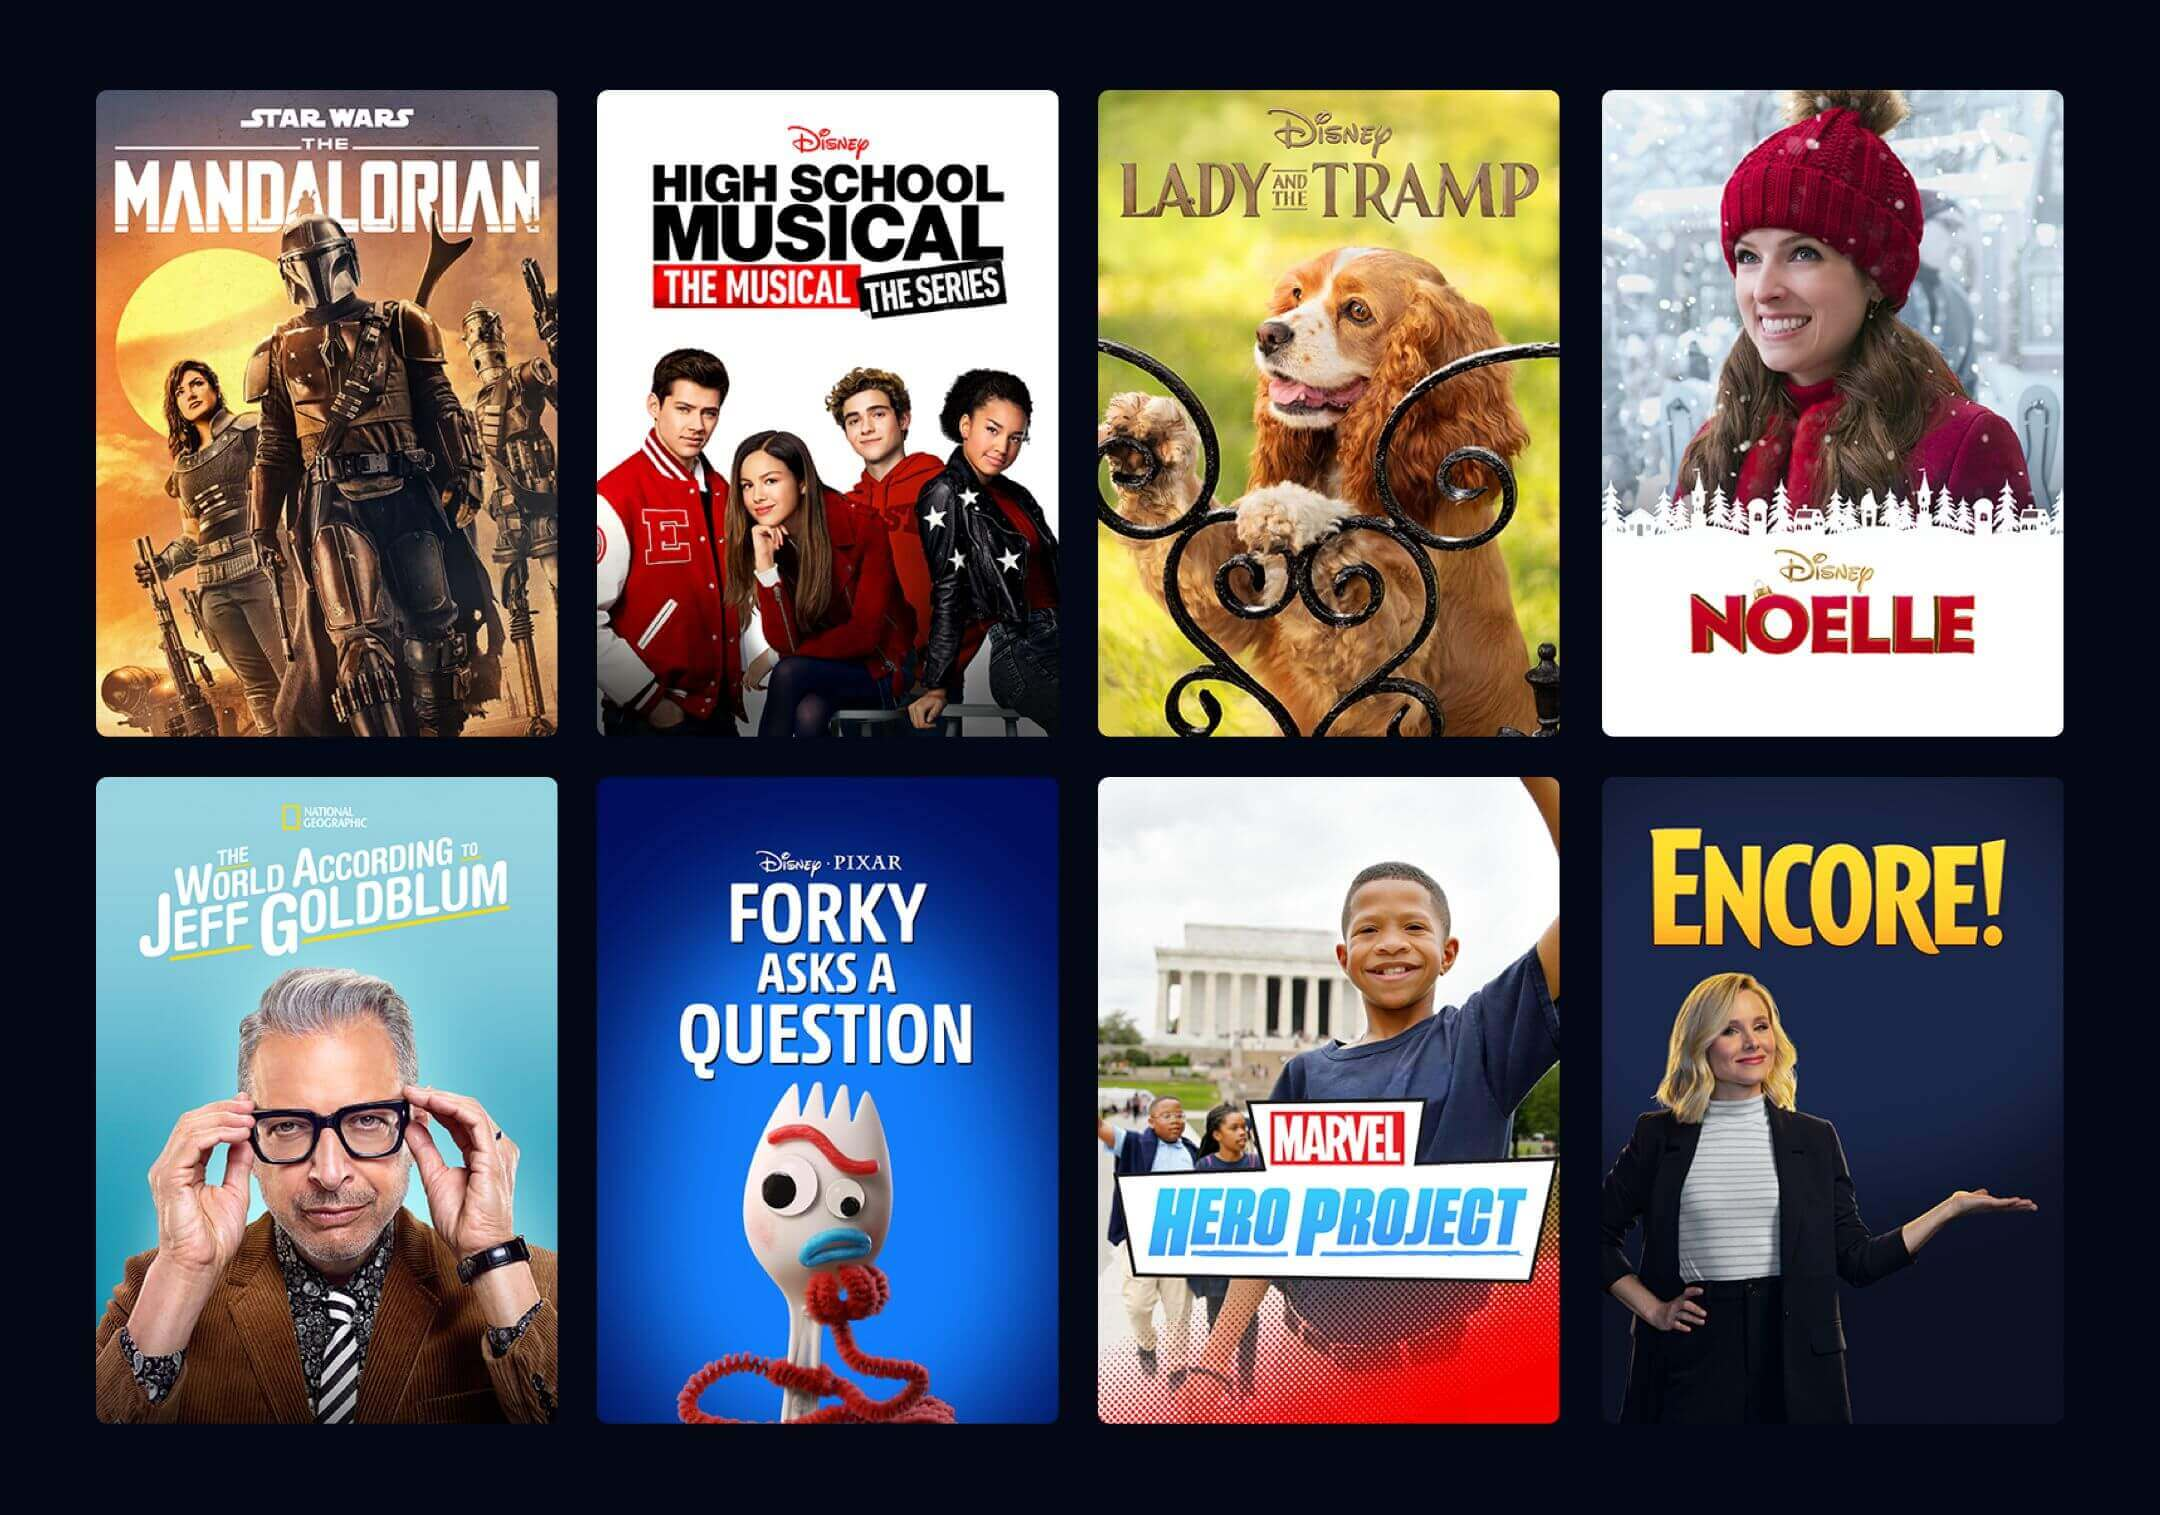 Disney+ will launch a week early in the UK on March 24